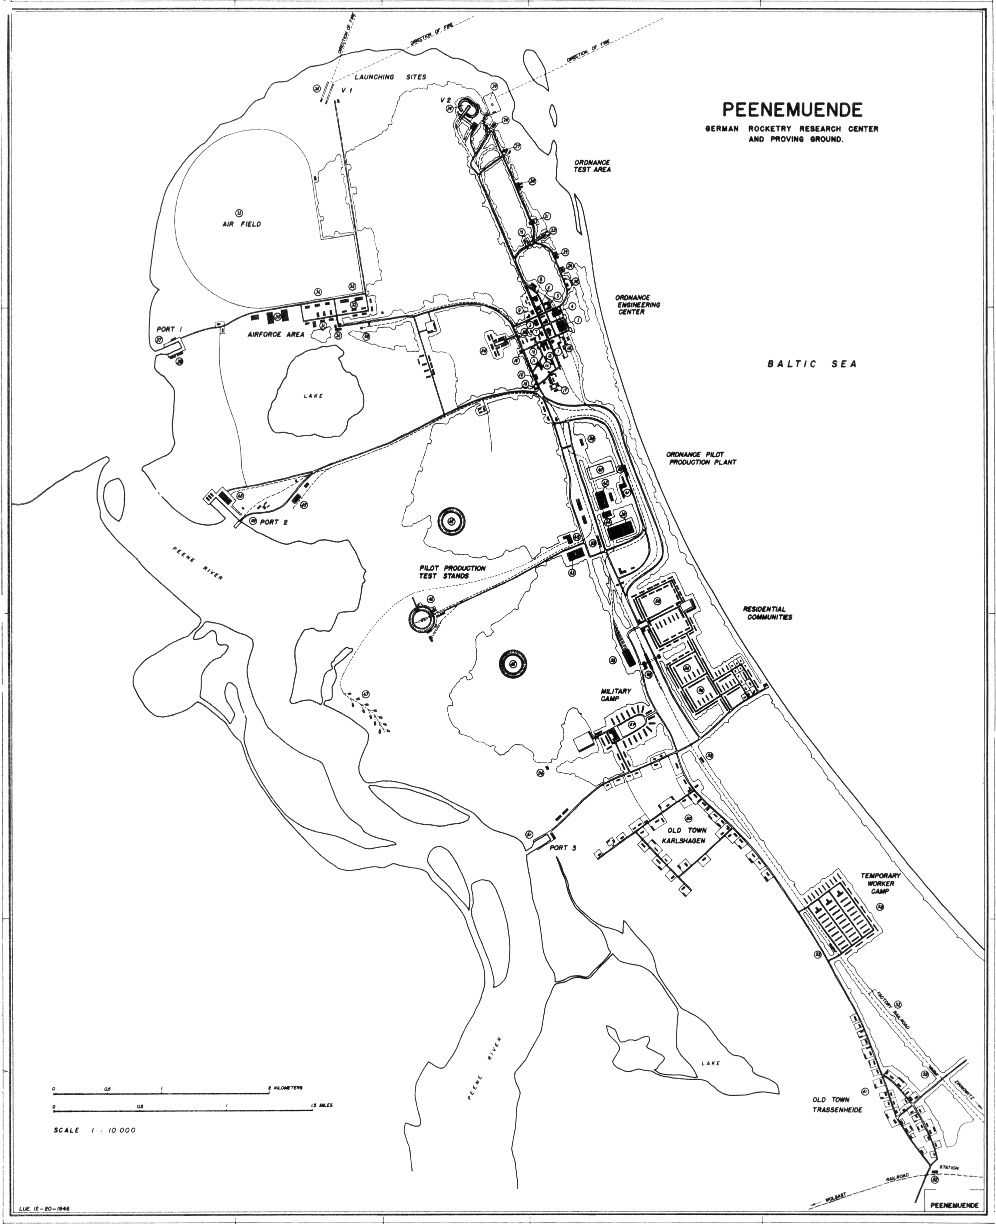 Map Of Peenemunde German Rocketry Research Center And Proving - Germany map test